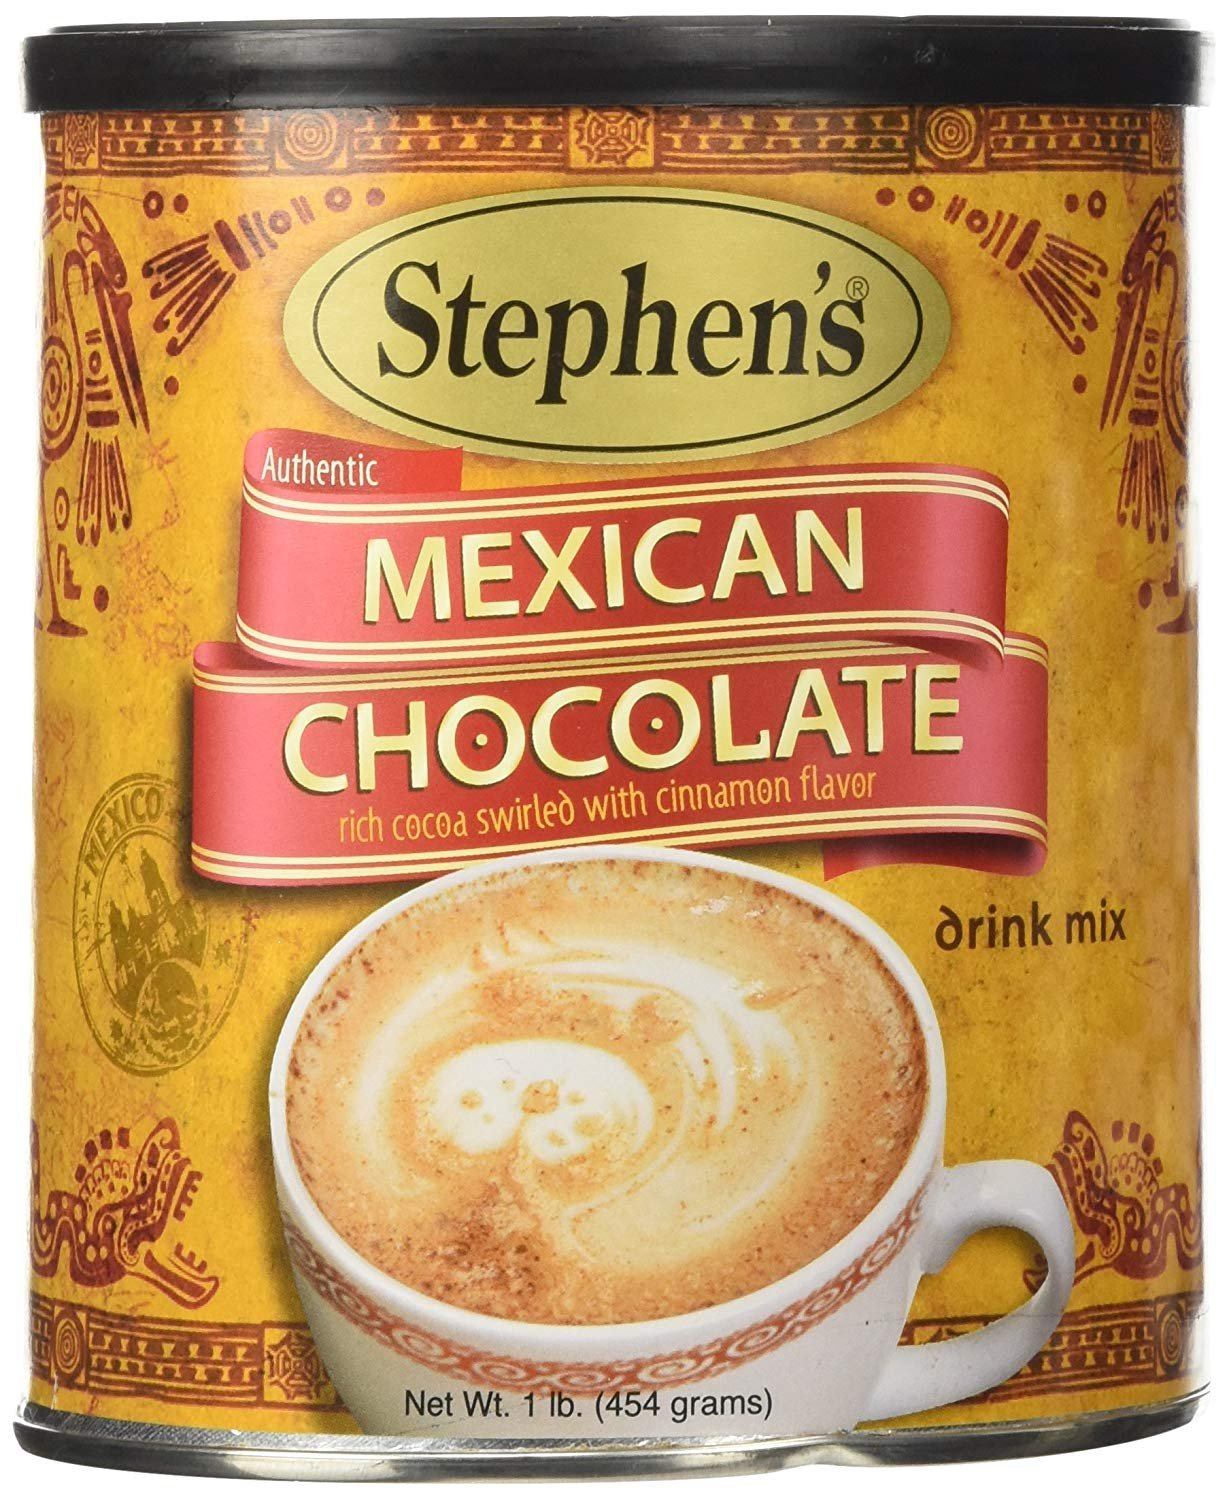 Stephens, Mexican Chocolate, Drink Mix, 16 oz Canister (Pack of 4)